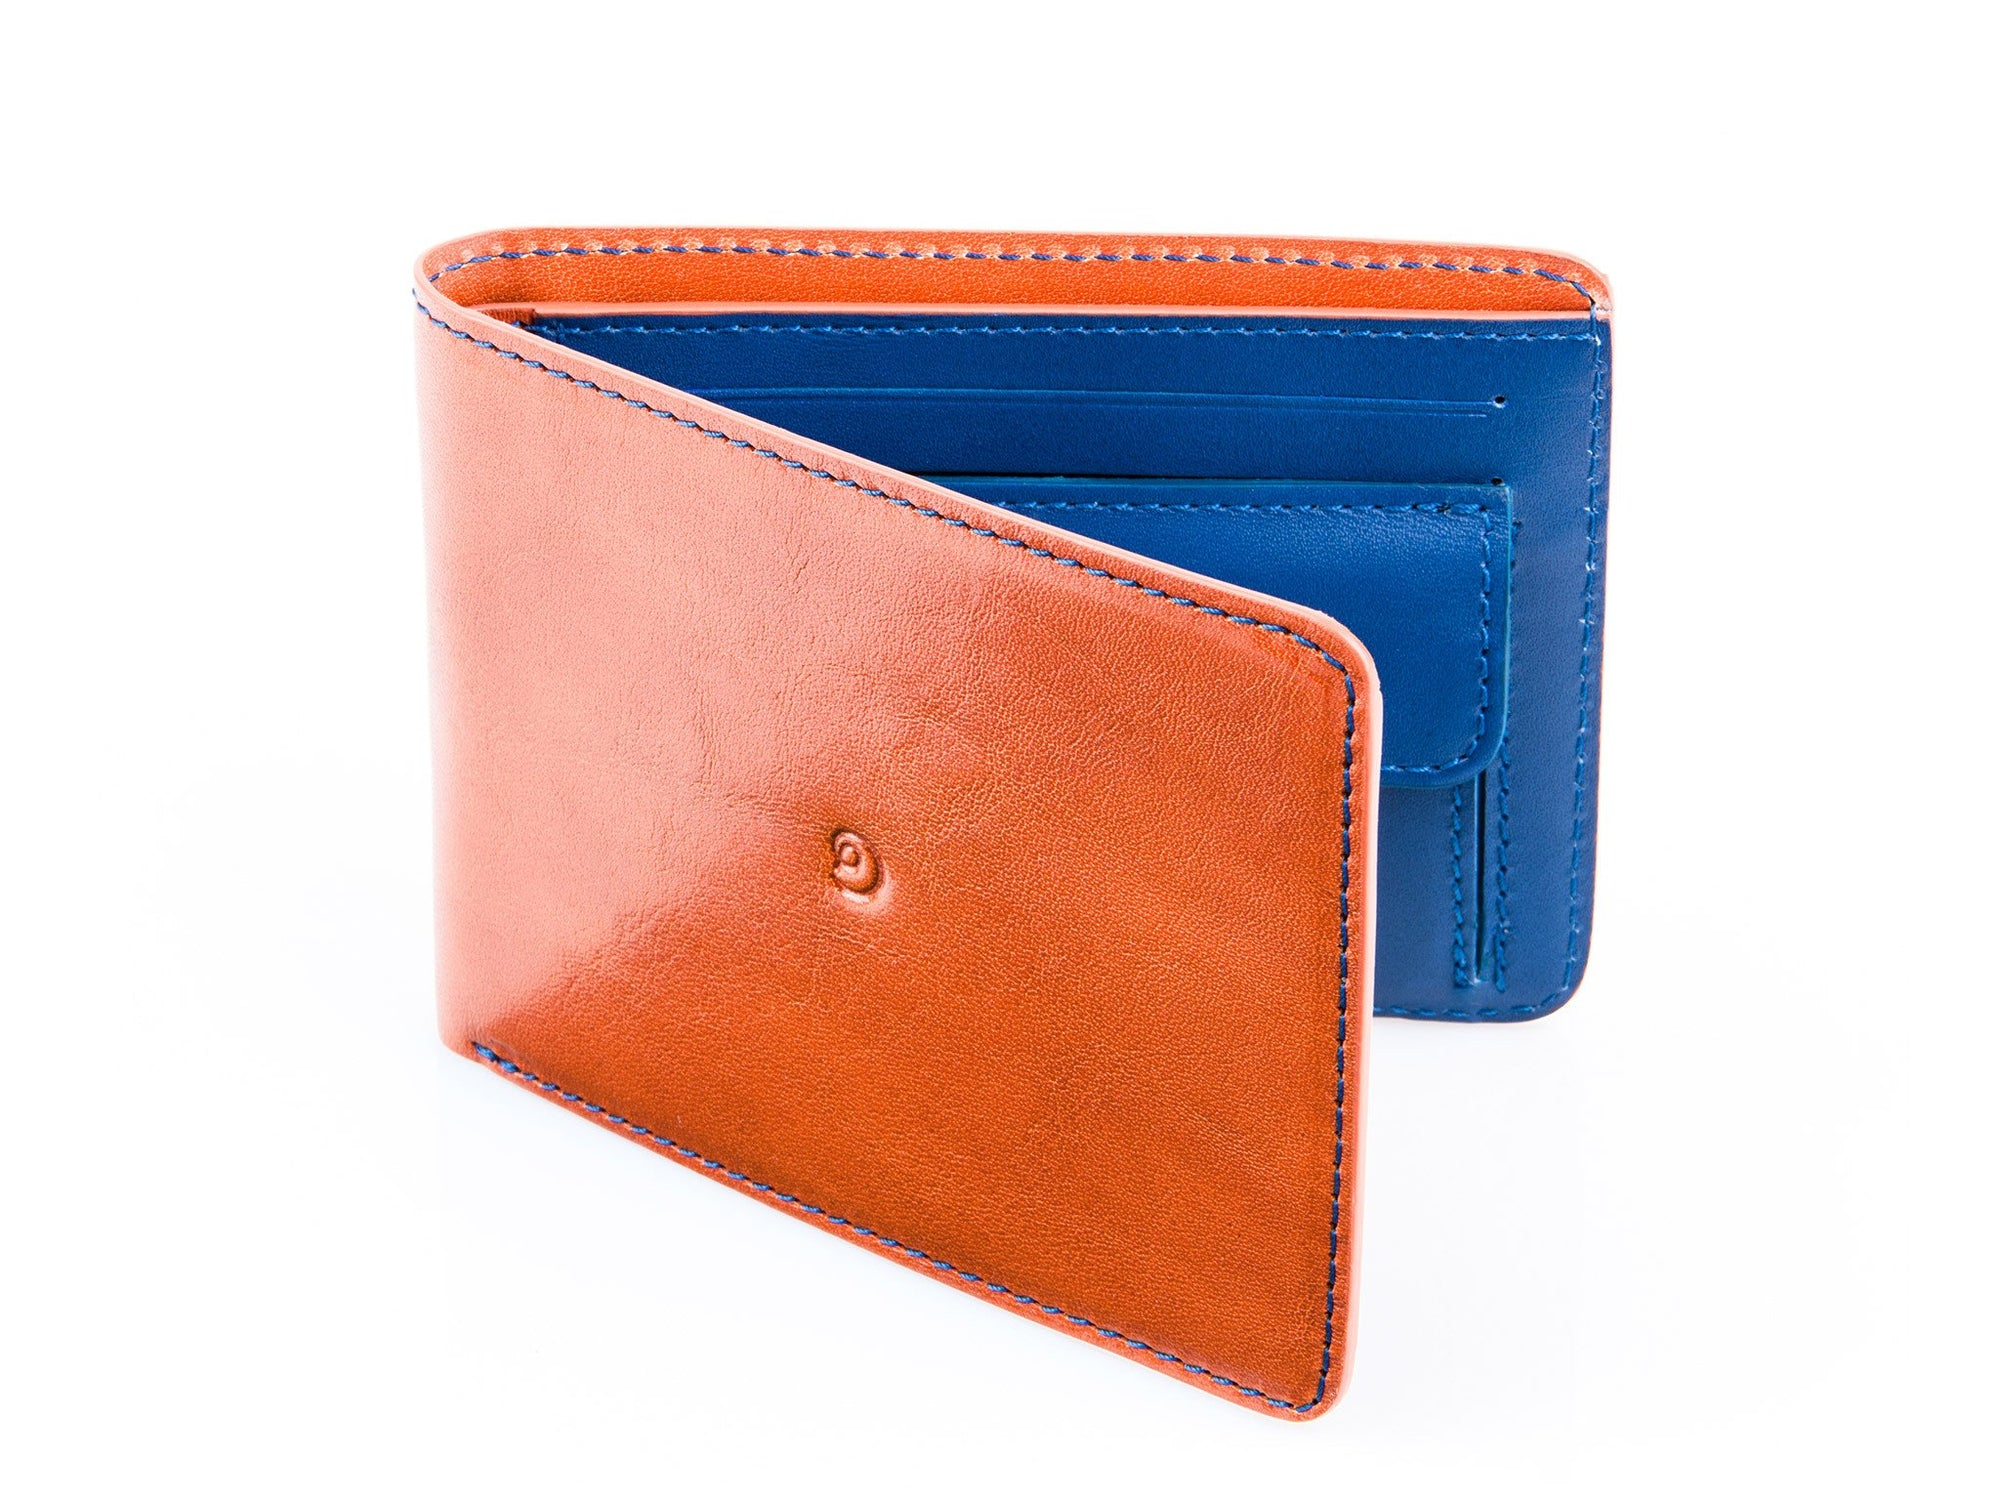 Danny P. Slim Leather Coin Wallet Tan Blue